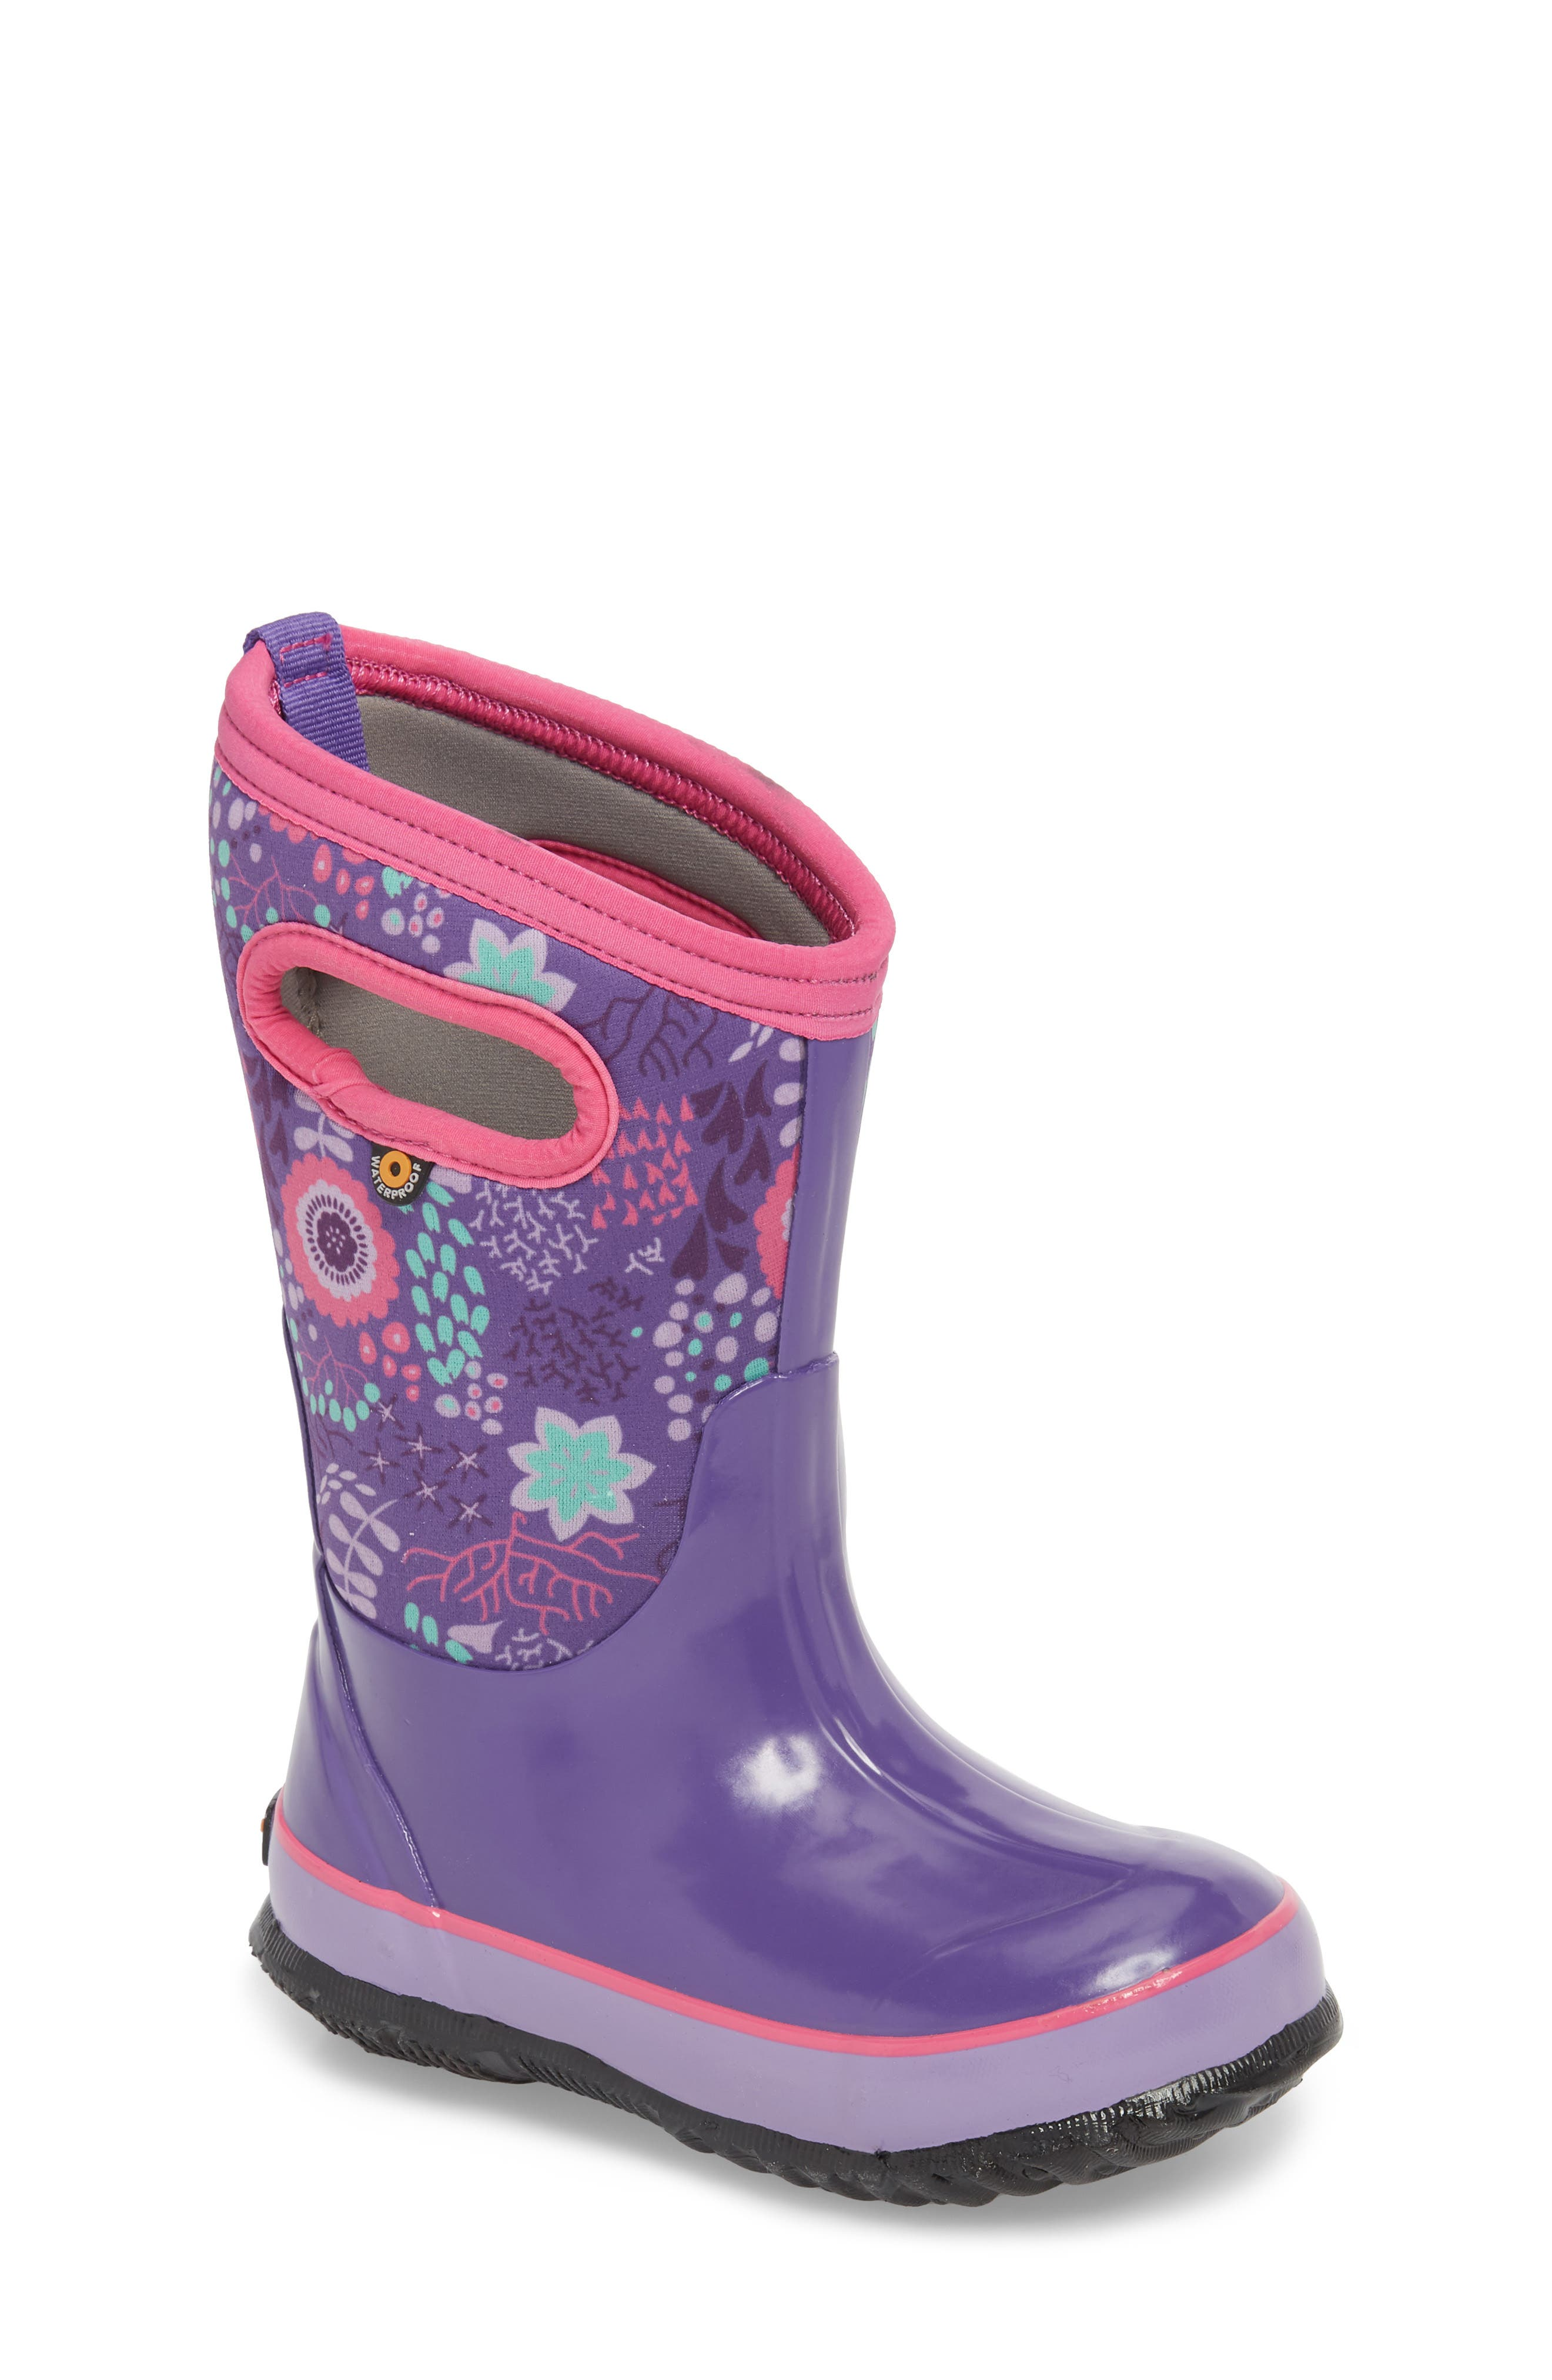 BOGS,                             Classic Reef Insulated Print Waterproof Boot,                             Main thumbnail 1, color,                             540